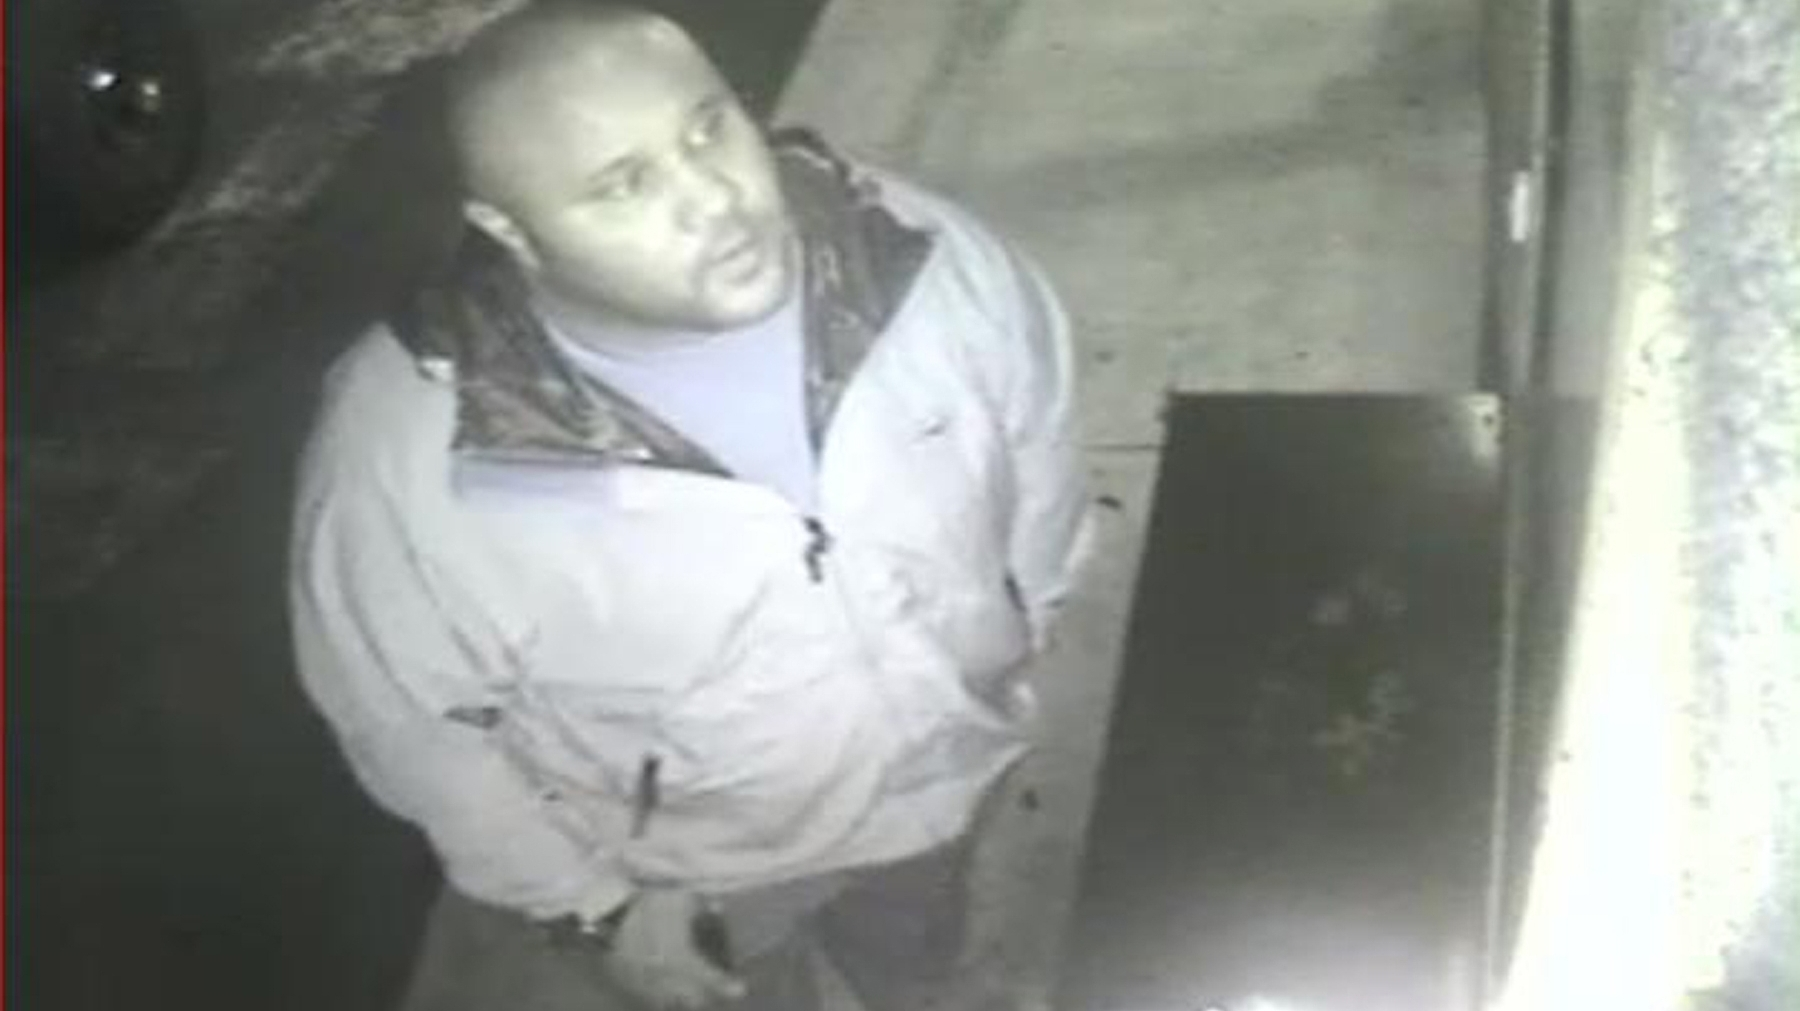 This photo, released by the Irvine, Calif., Police Department shows suspect Christopher Dorner on surveillance video at an Orange County, Calif., hotel on Feb. 8.